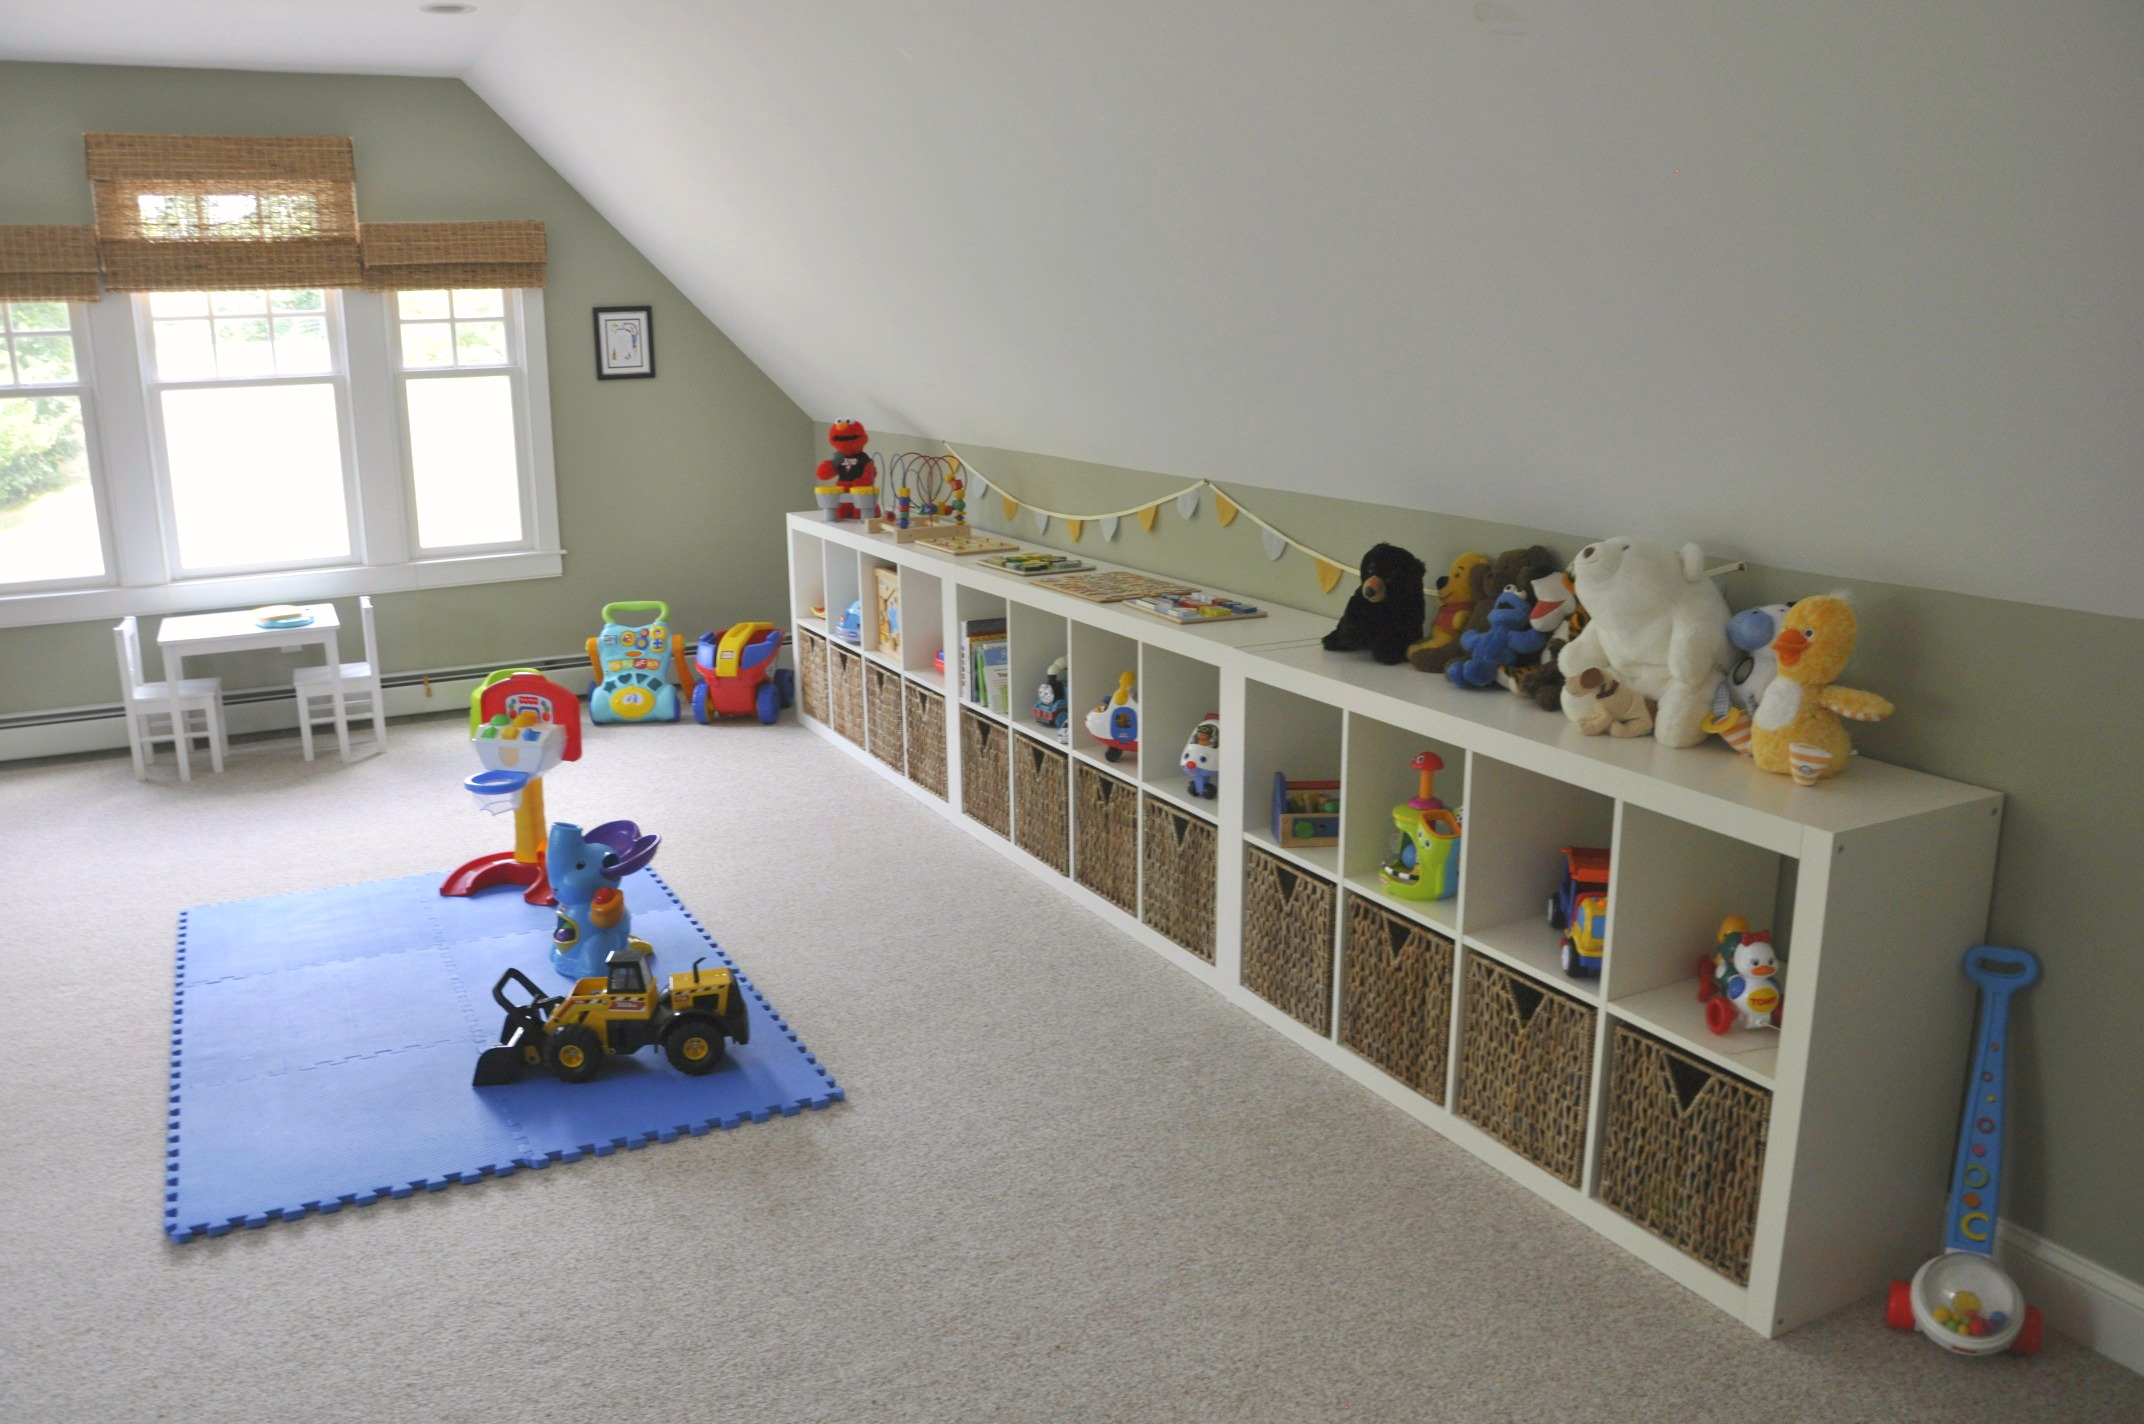 ikea expedit playroom storage 2 sisters 2 cities. Black Bedroom Furniture Sets. Home Design Ideas